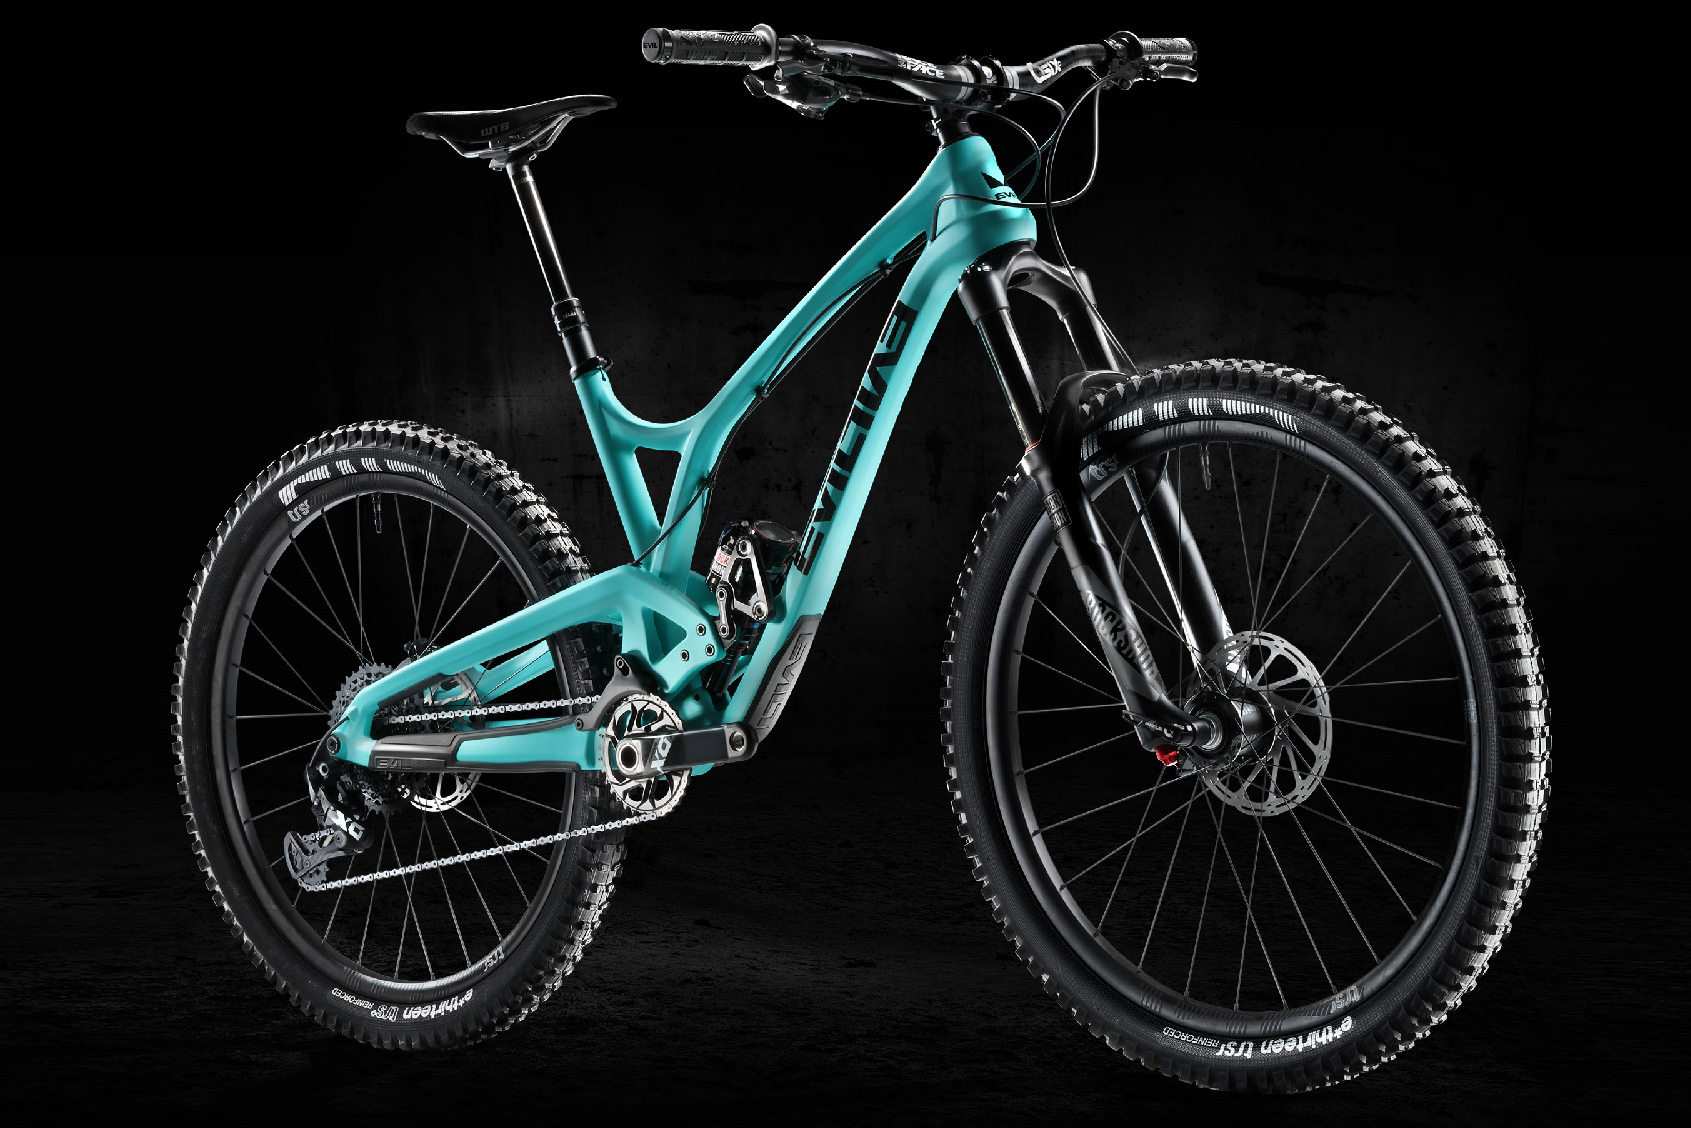 Review: Evil's New Trail Bike – The Calling